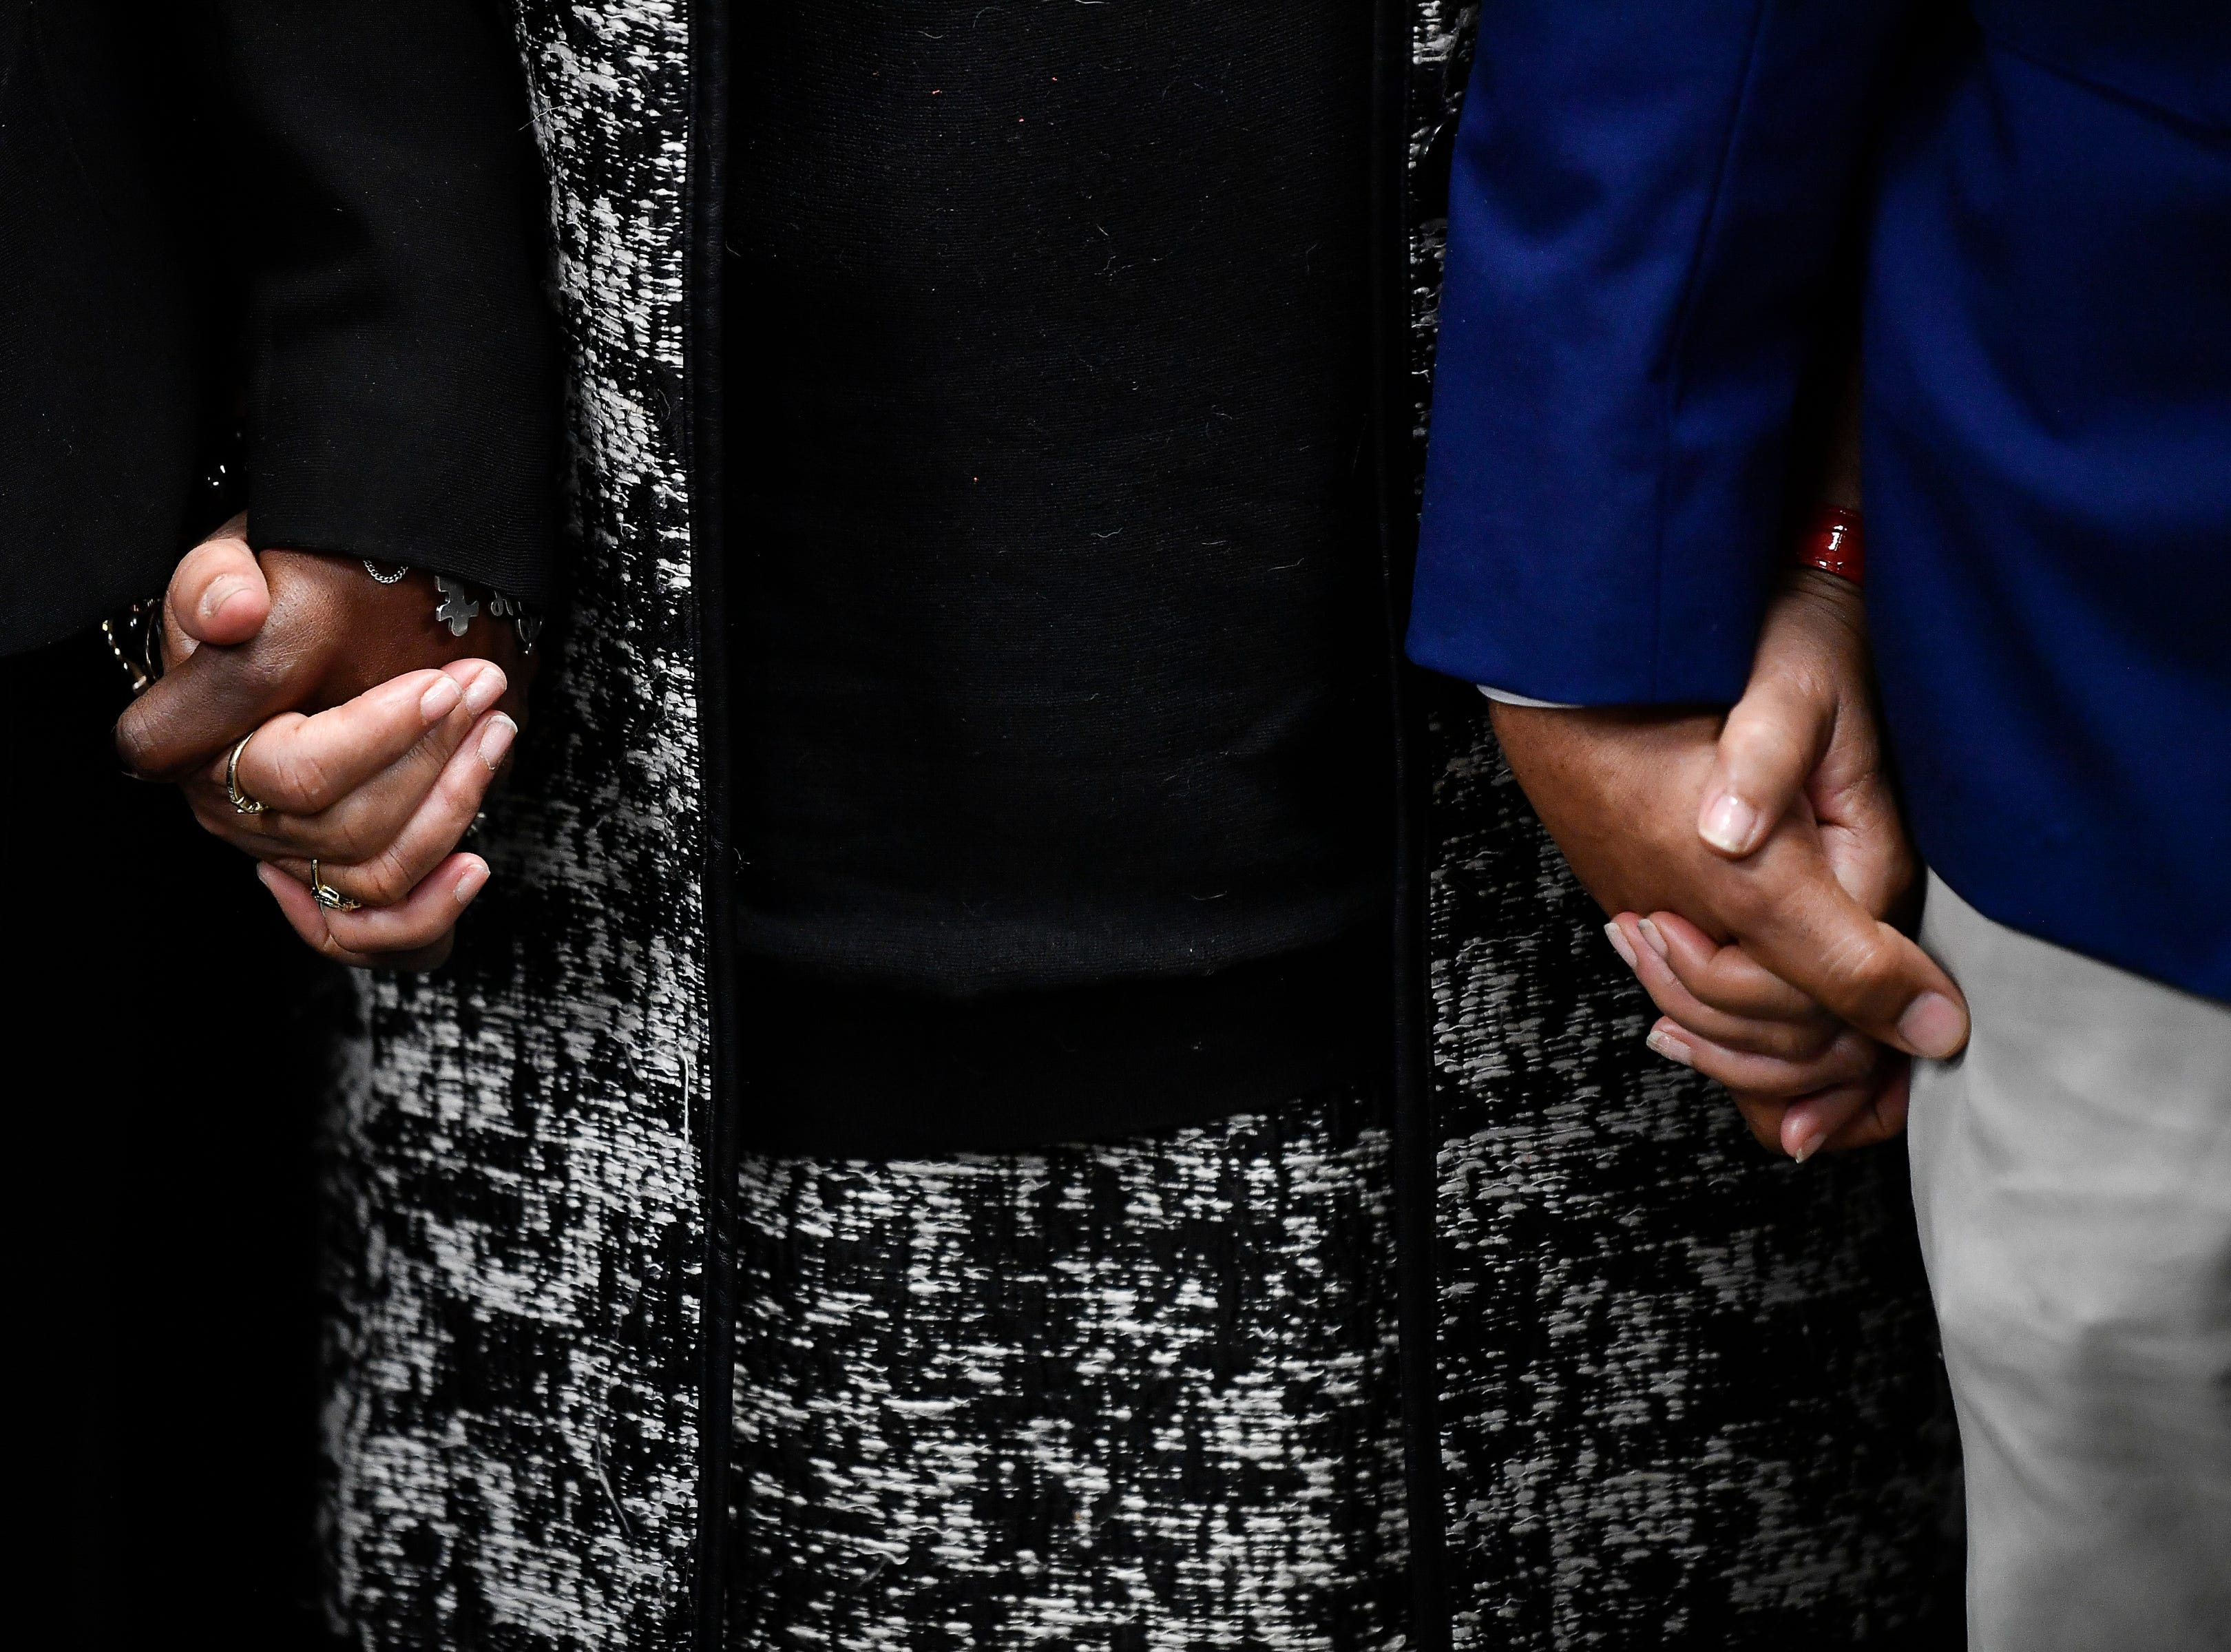 Supporters of Cyntoia Brown hold hands as they pray during a press conference asking Gov. Bill Haslam to grant Cyntoia Brown clemency after being convicted of murder when she was 16-years-old in 2004 at the Cordell Hull Building Thursday, Jan. 3, 2019, in Nashville, Tenn.